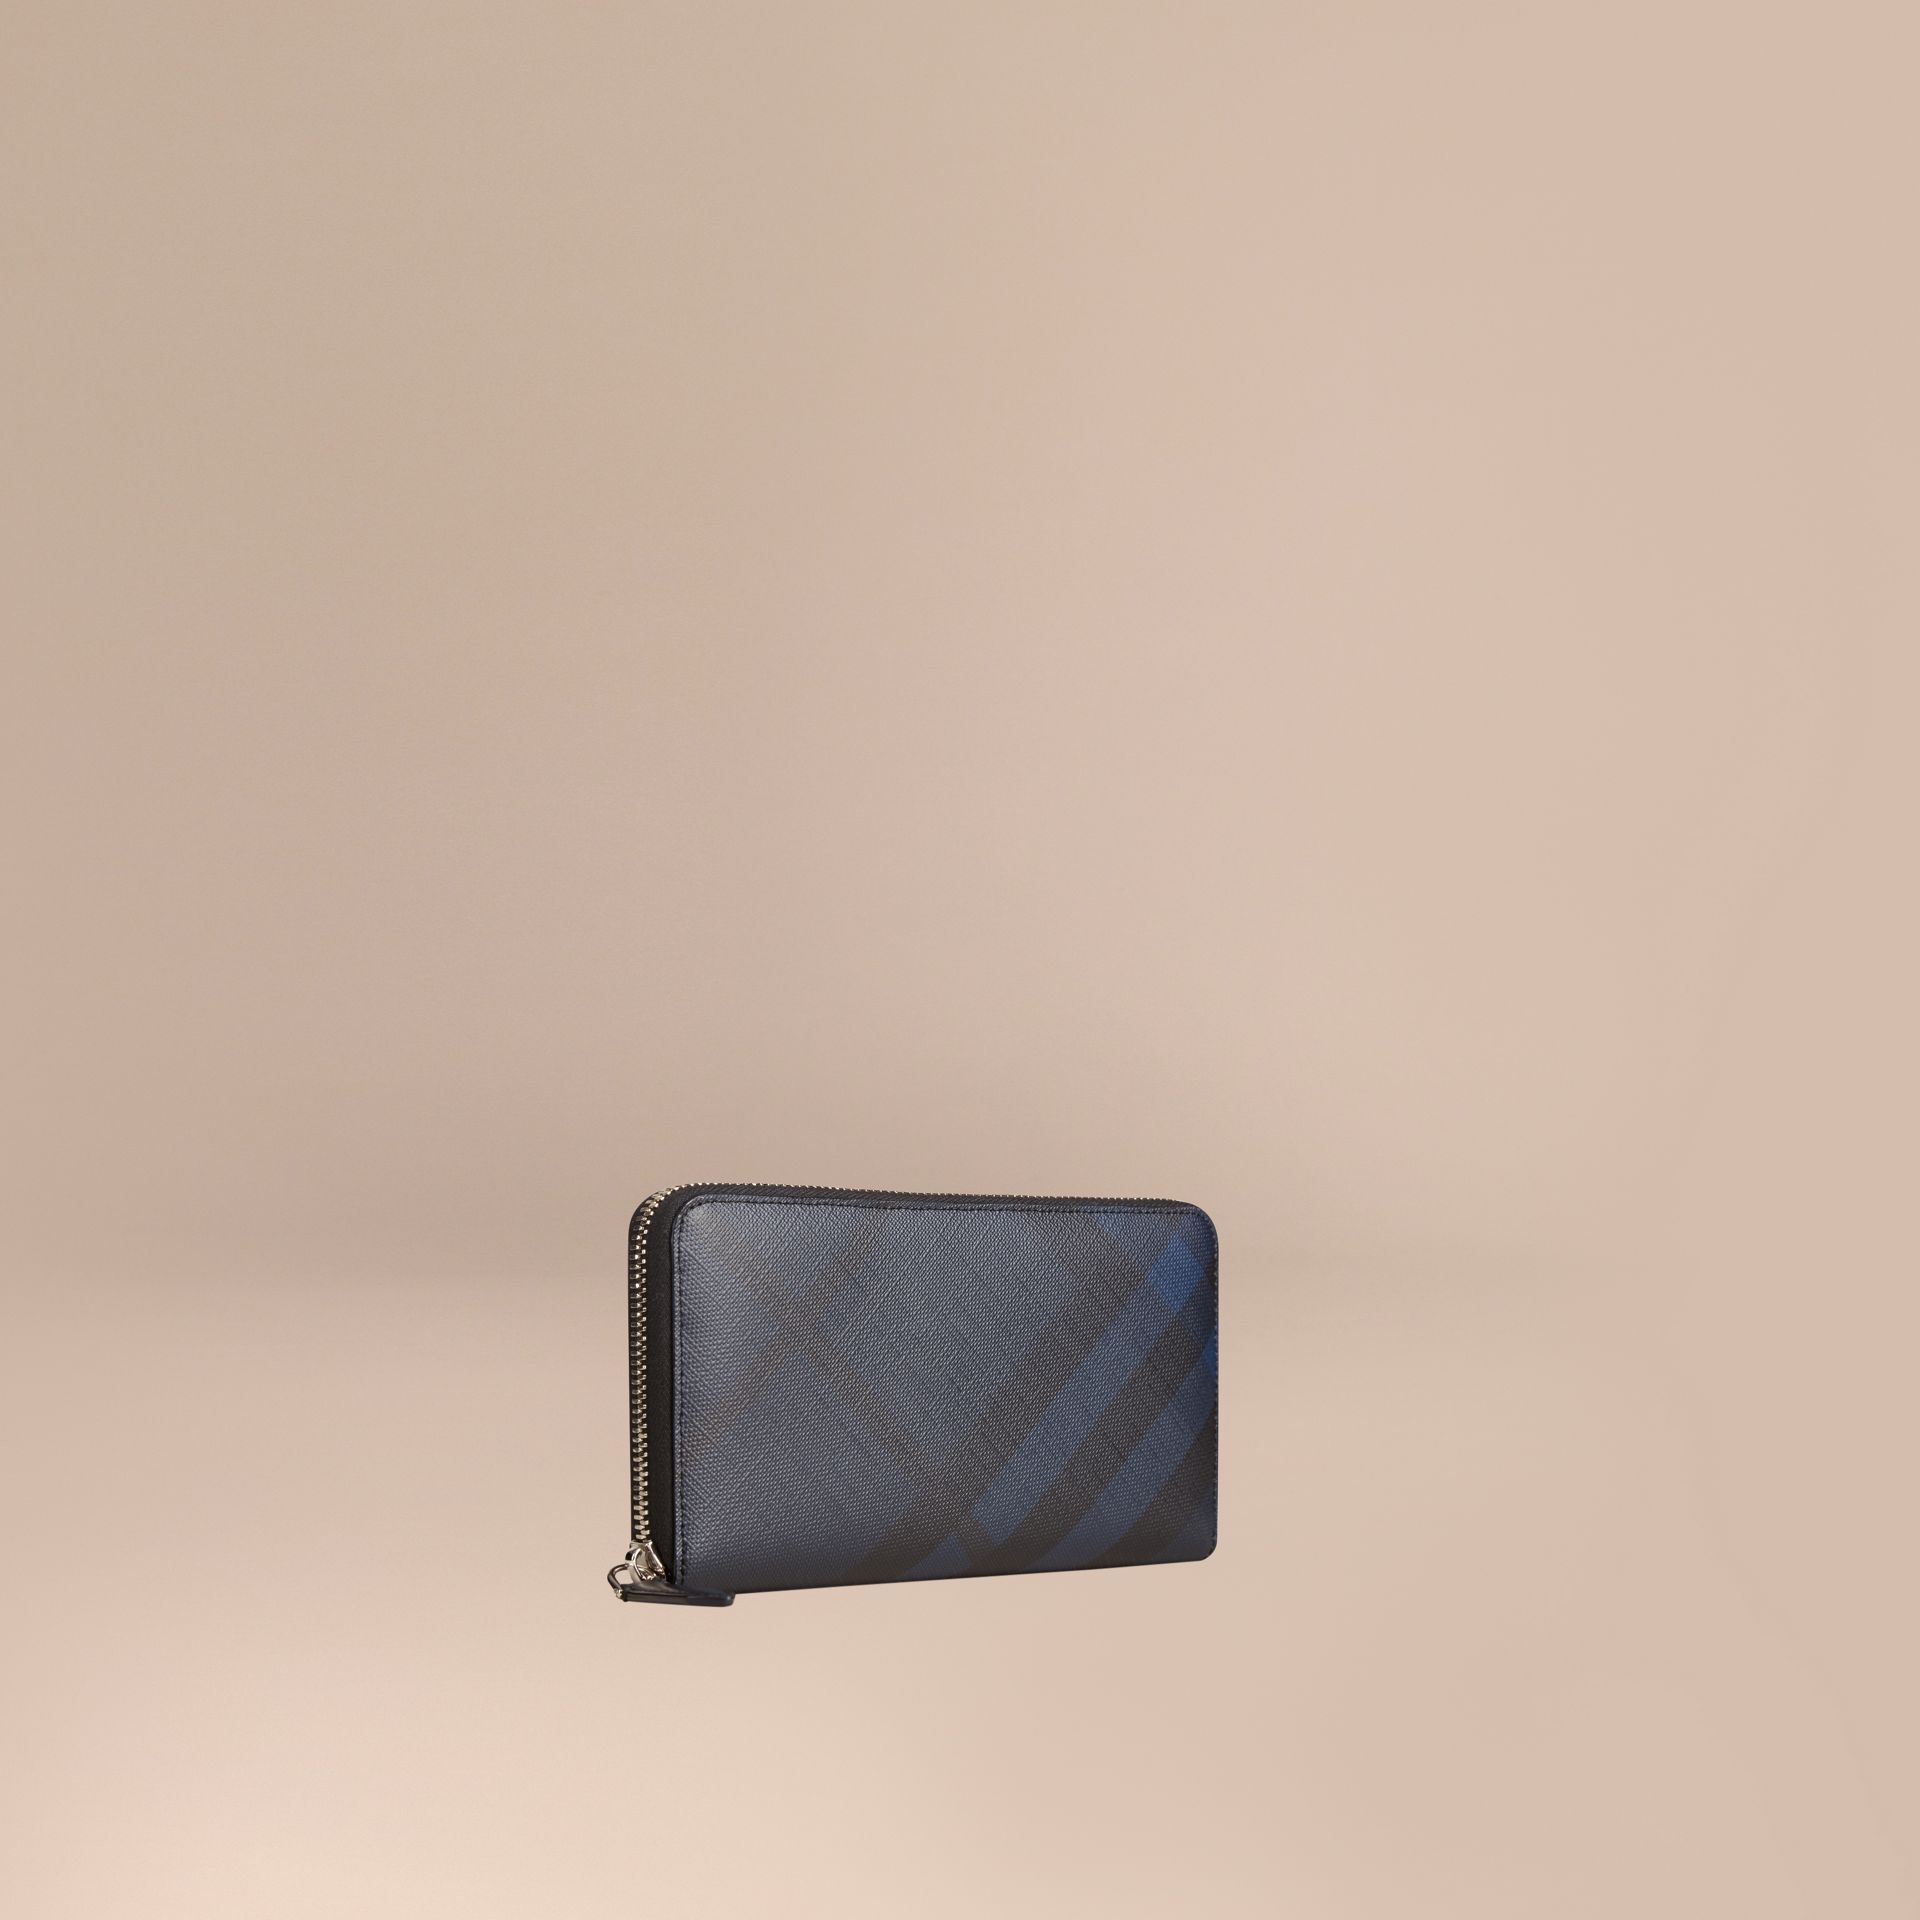 Navy/black London Check Ziparound Wallet Navy/black - gallery image 1